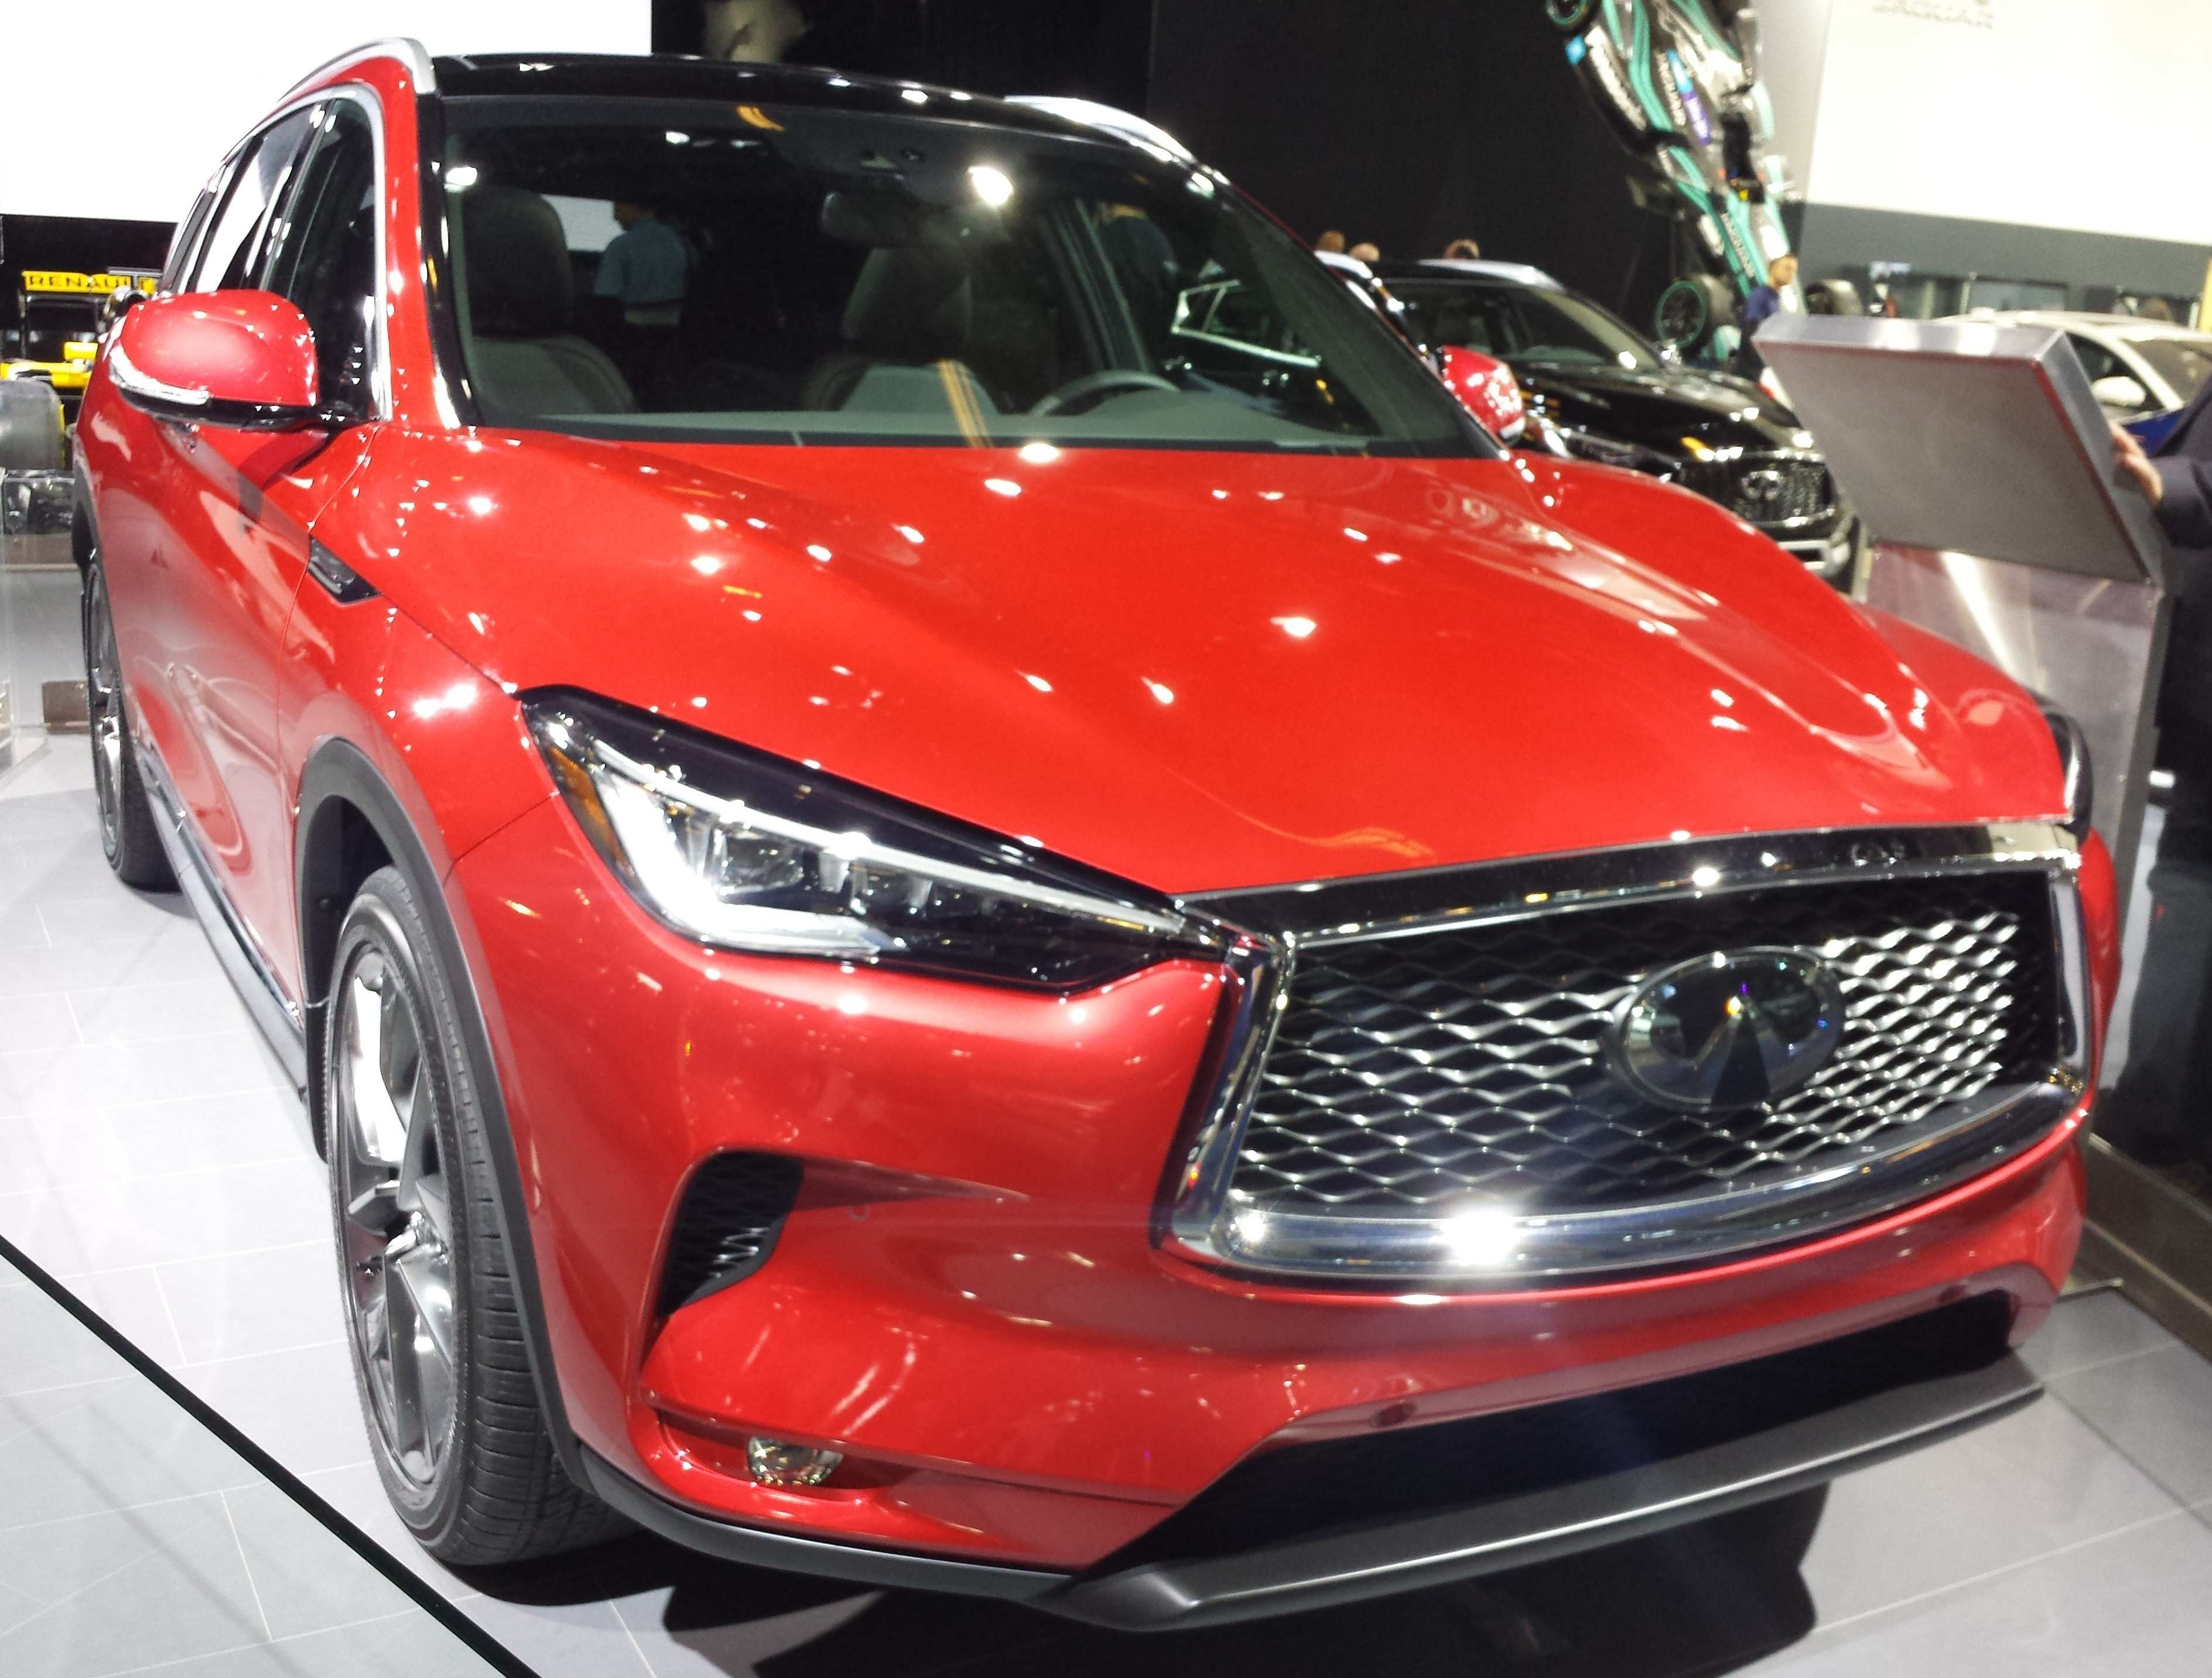 52 All New 2019 Infiniti Qx50 Wiki Exterior And Interior